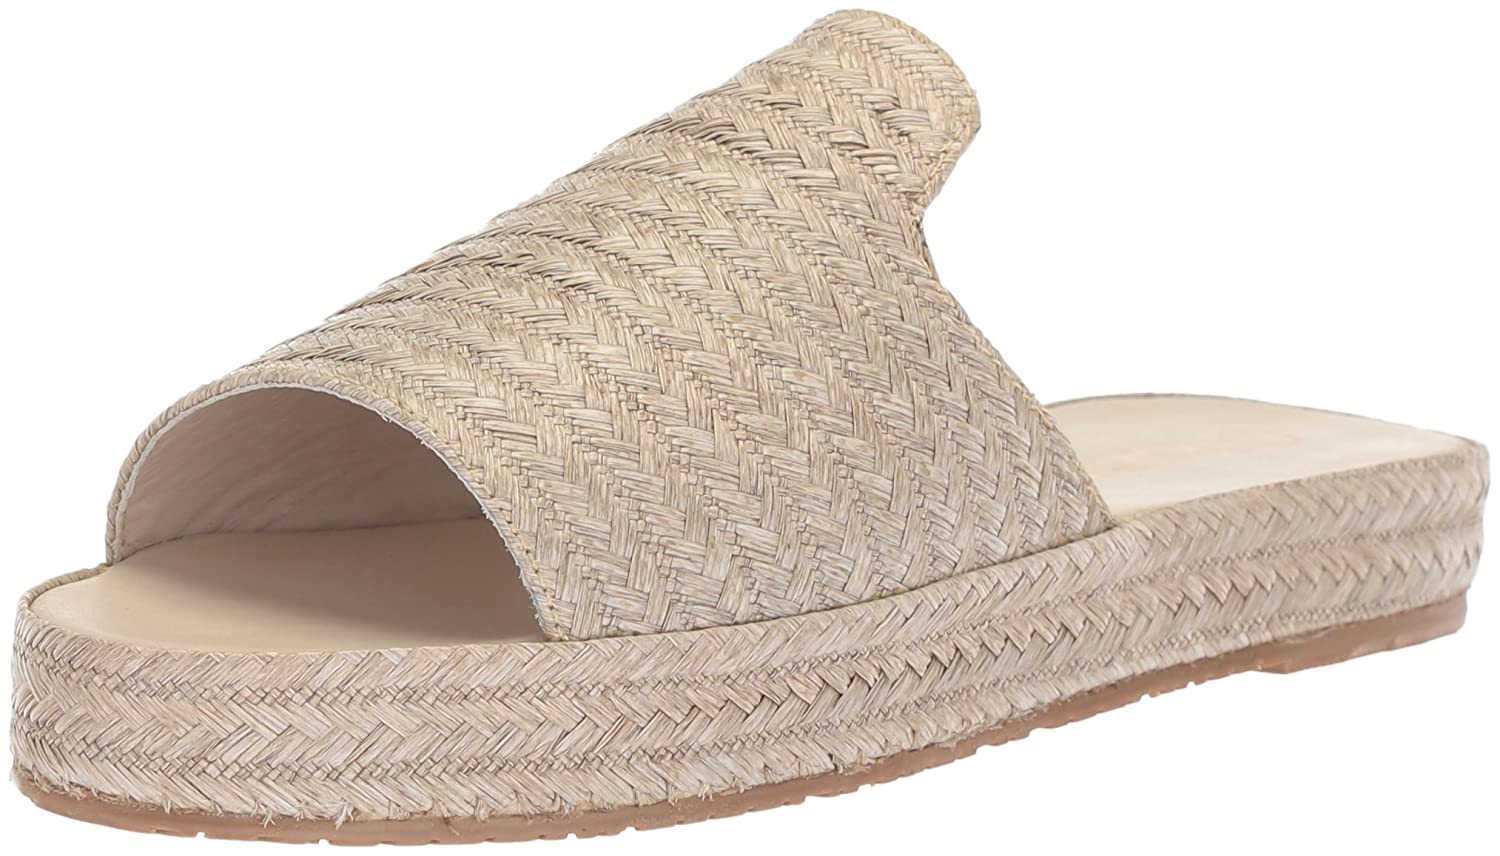 KAANAS Women's Martinique Woven Espadrille Flat Pool Slide Sandal B076FLVRW9 8 B(M) US|Grey